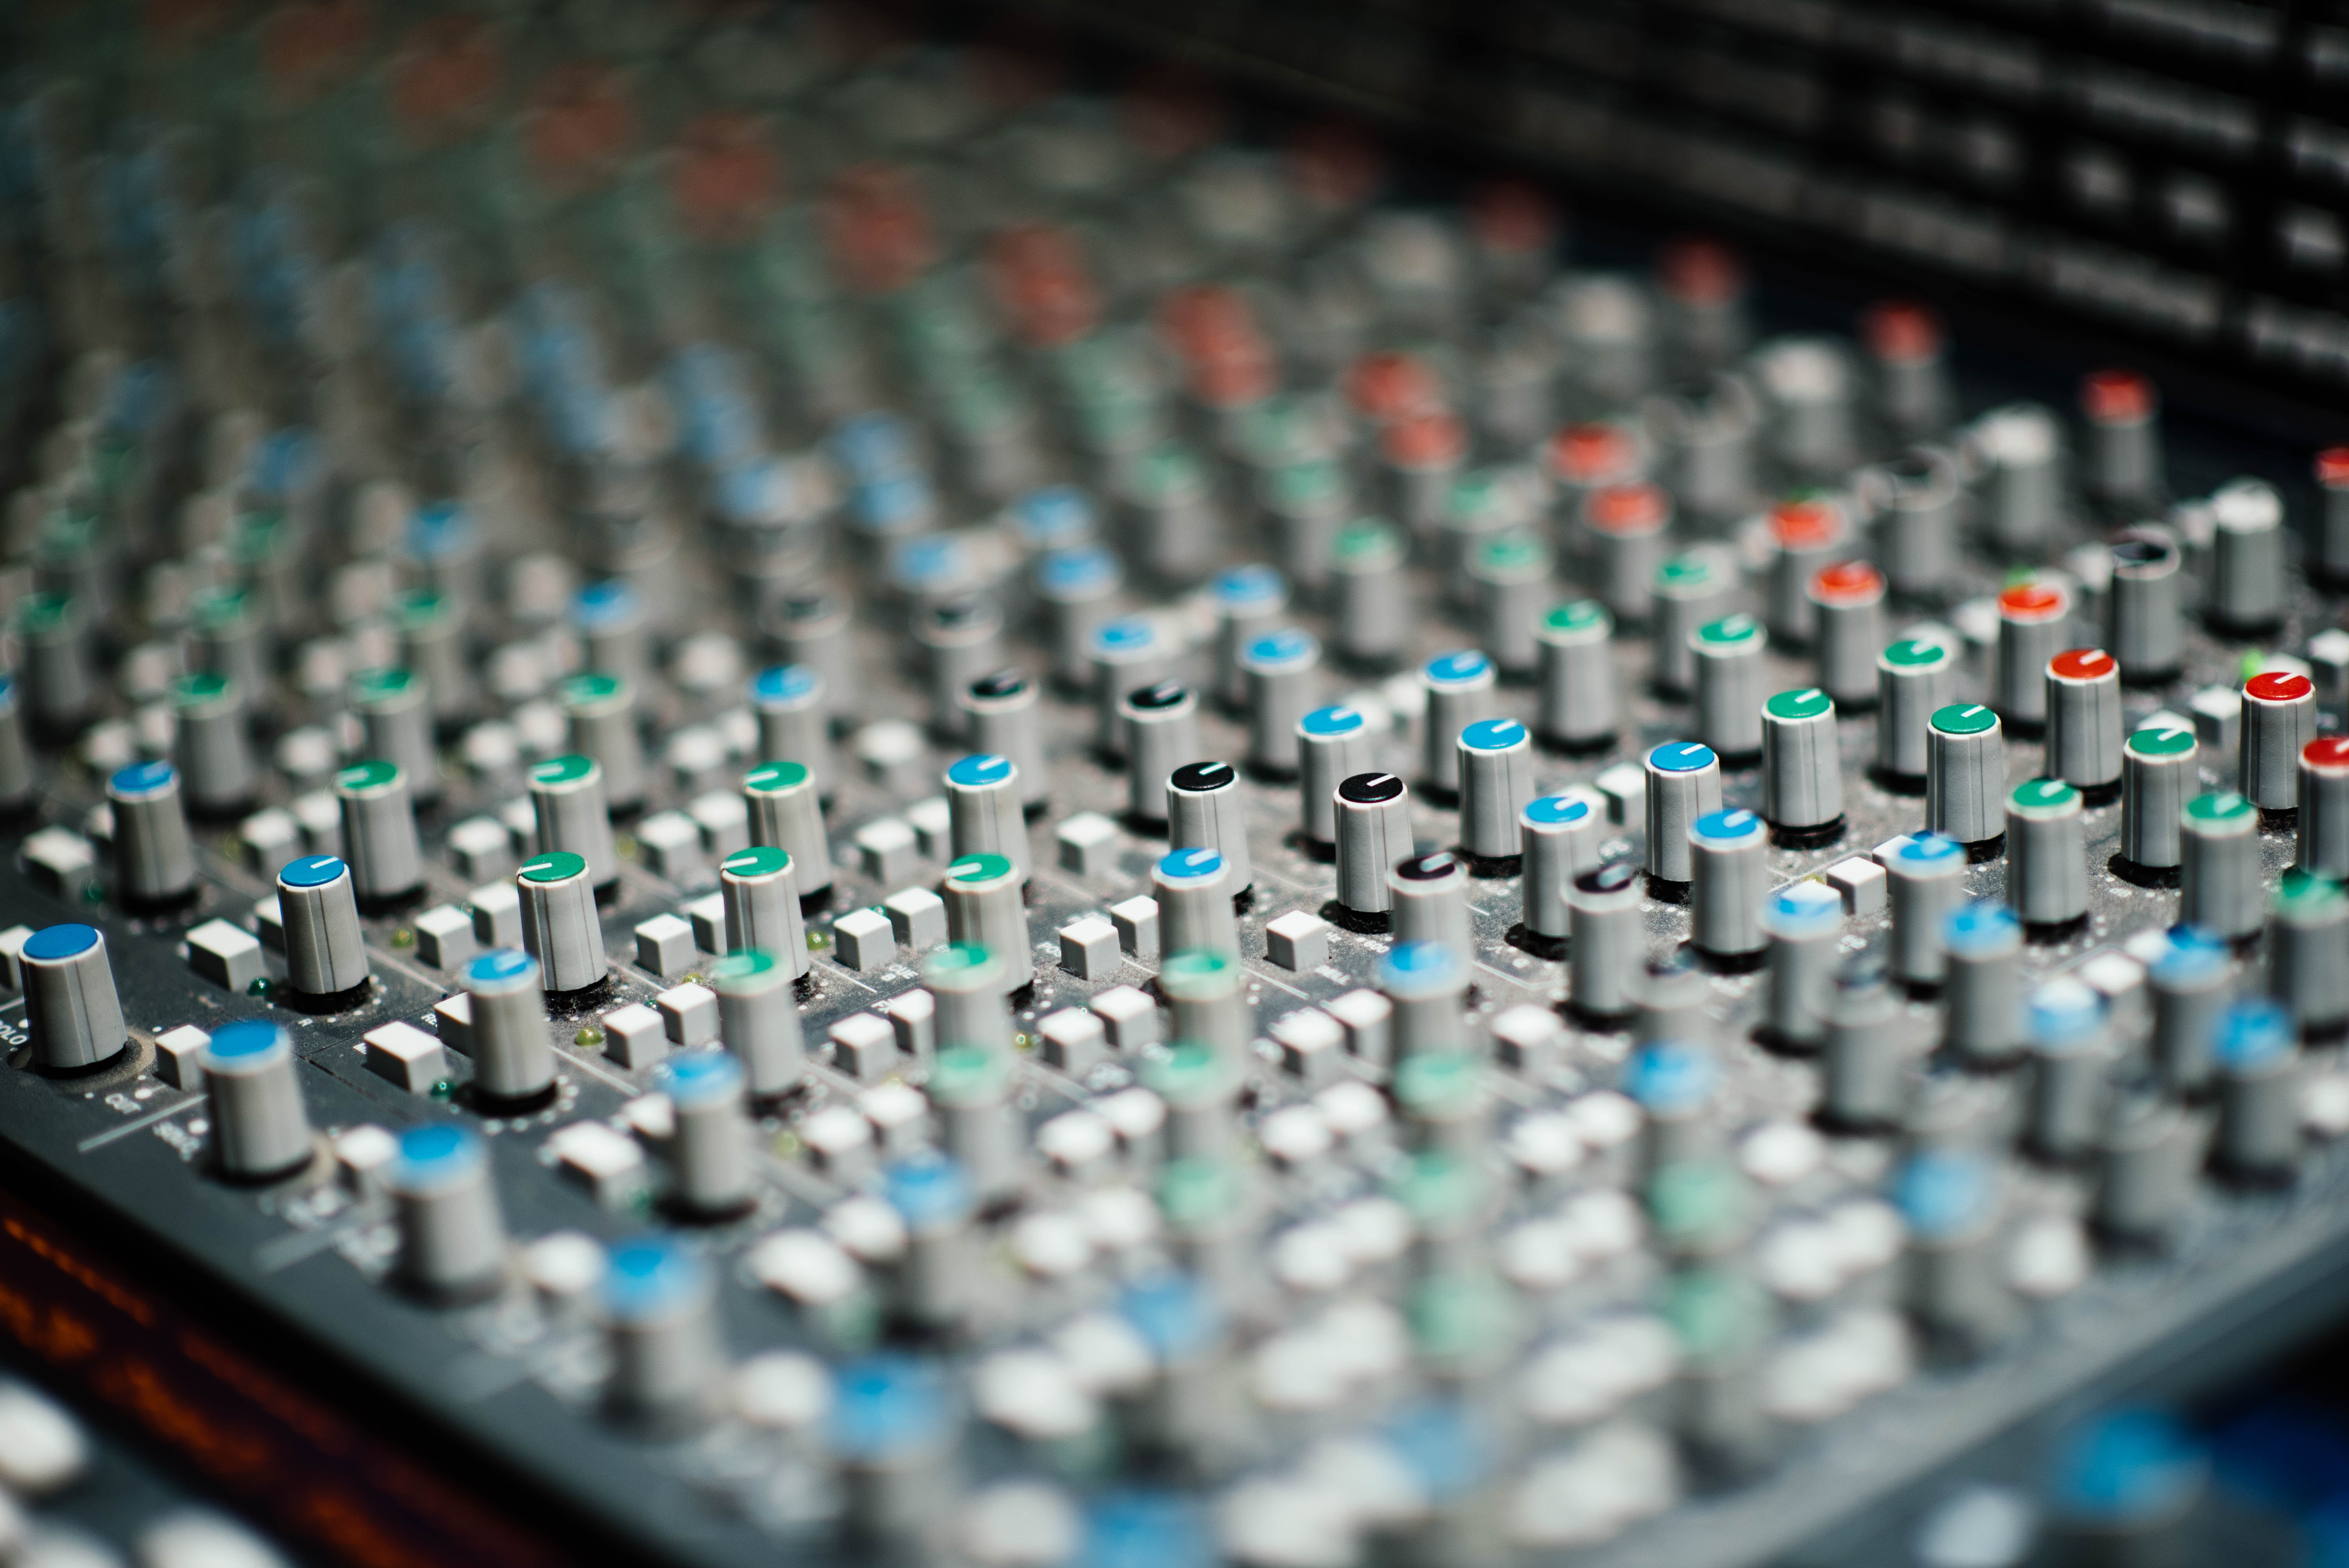 Macro of sound equipment mixing board with equalizers, knobs, and buttons